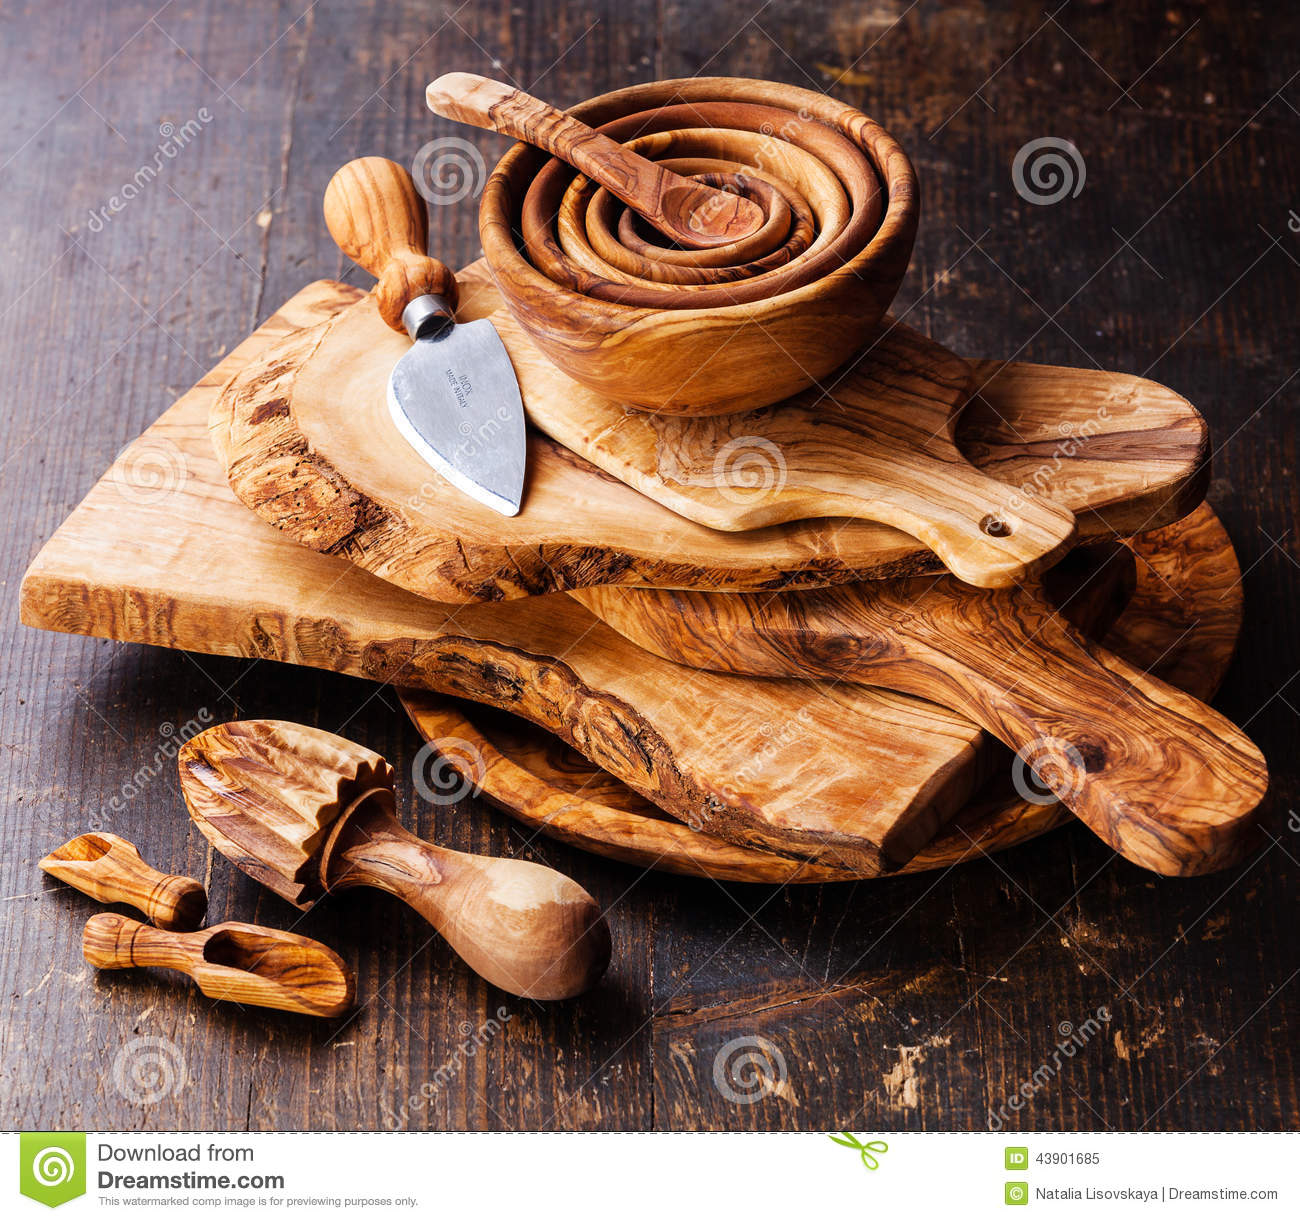 Olive wood tableware & Olive wood tableware stock image. Image of wood accessory - 43901685